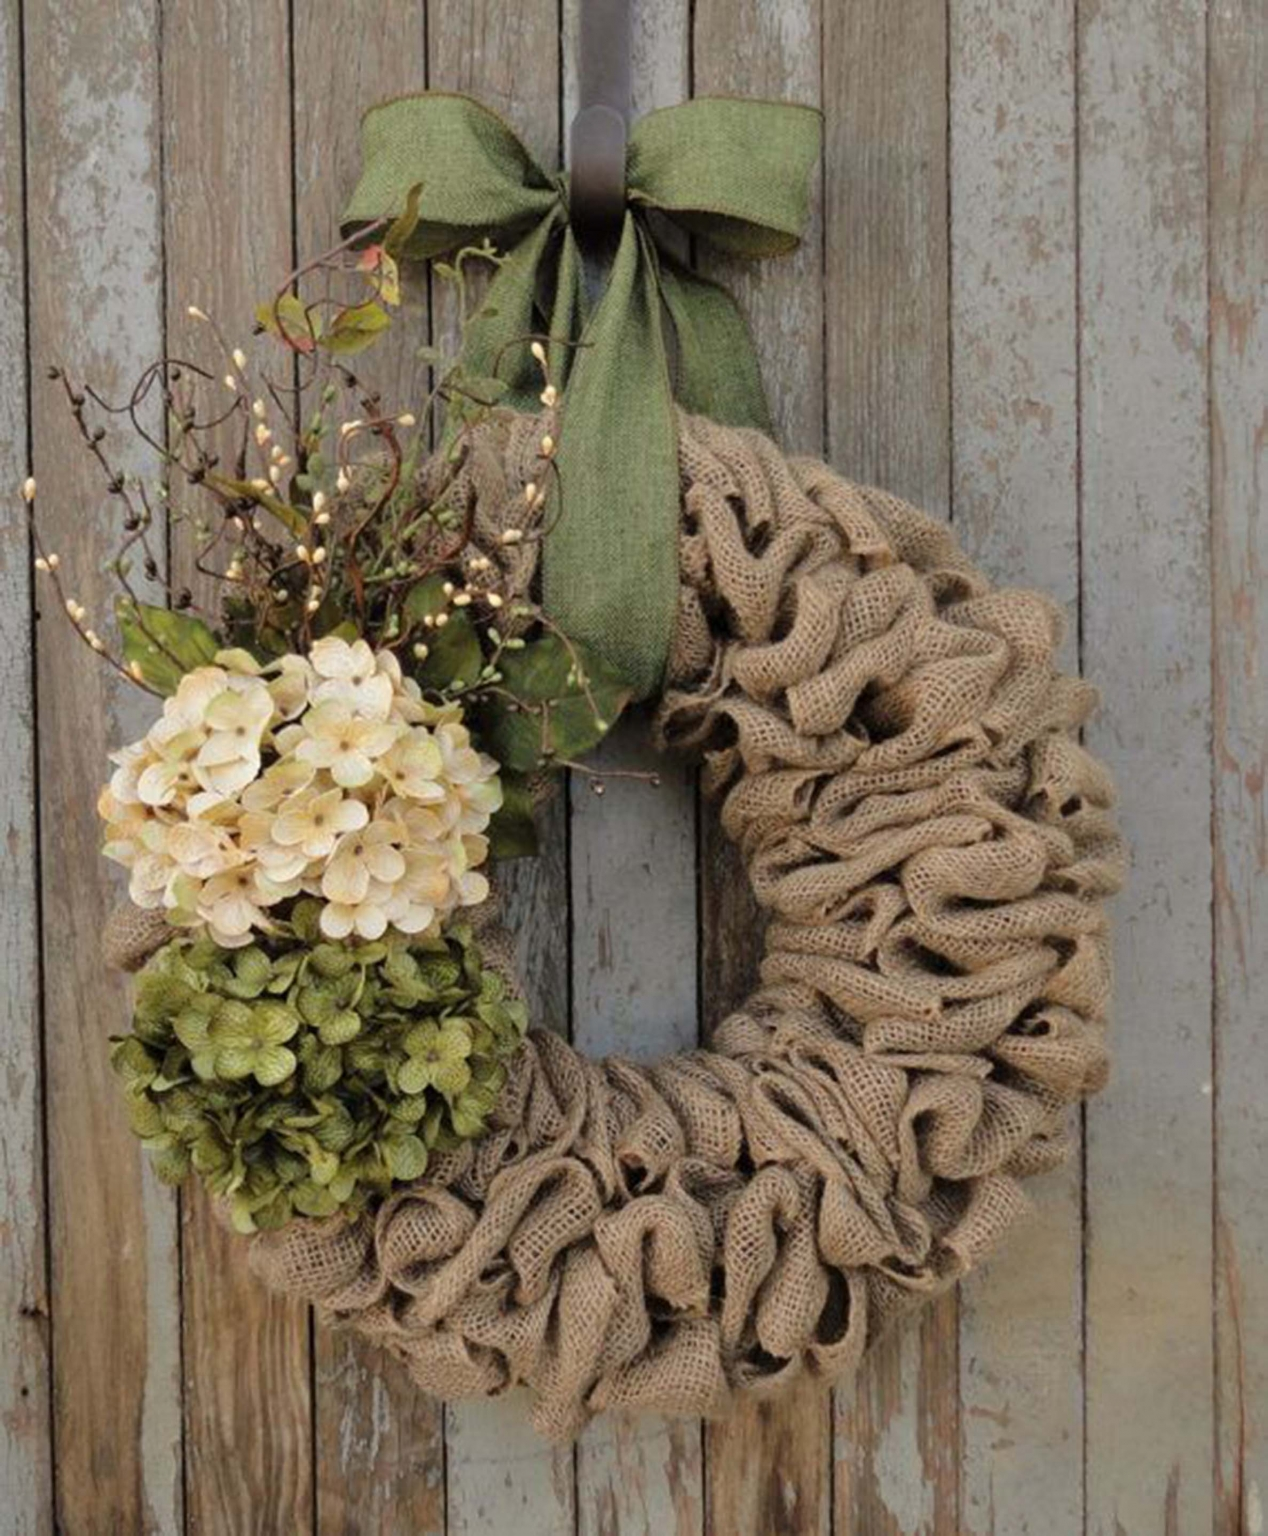 Craft a Burlap Wreath